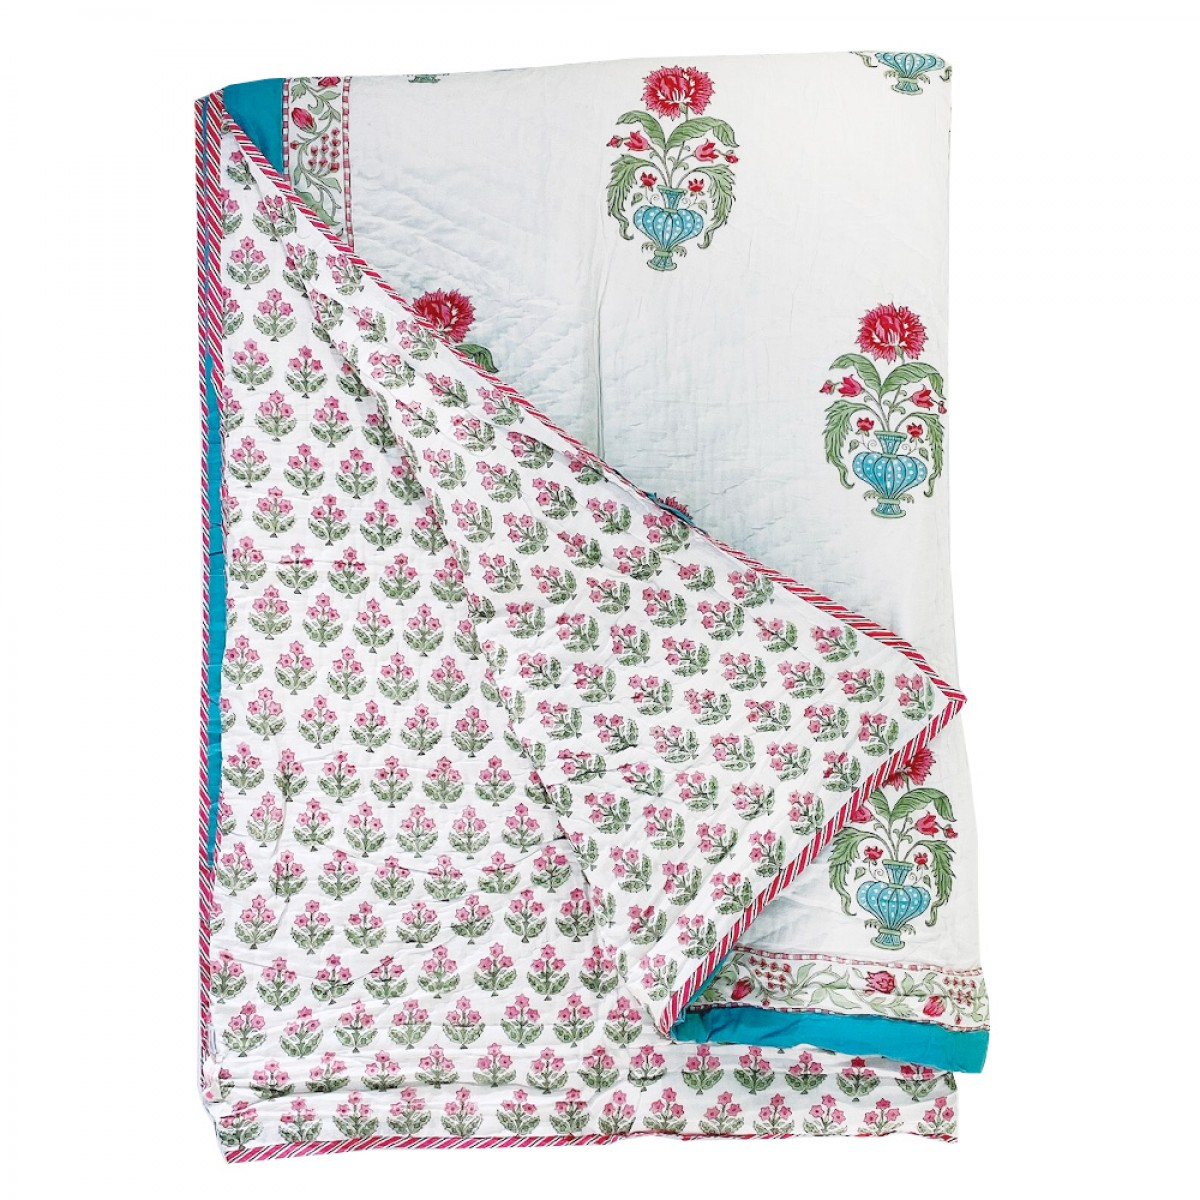 100% Cotton Block Printed Quilts - Turquoise